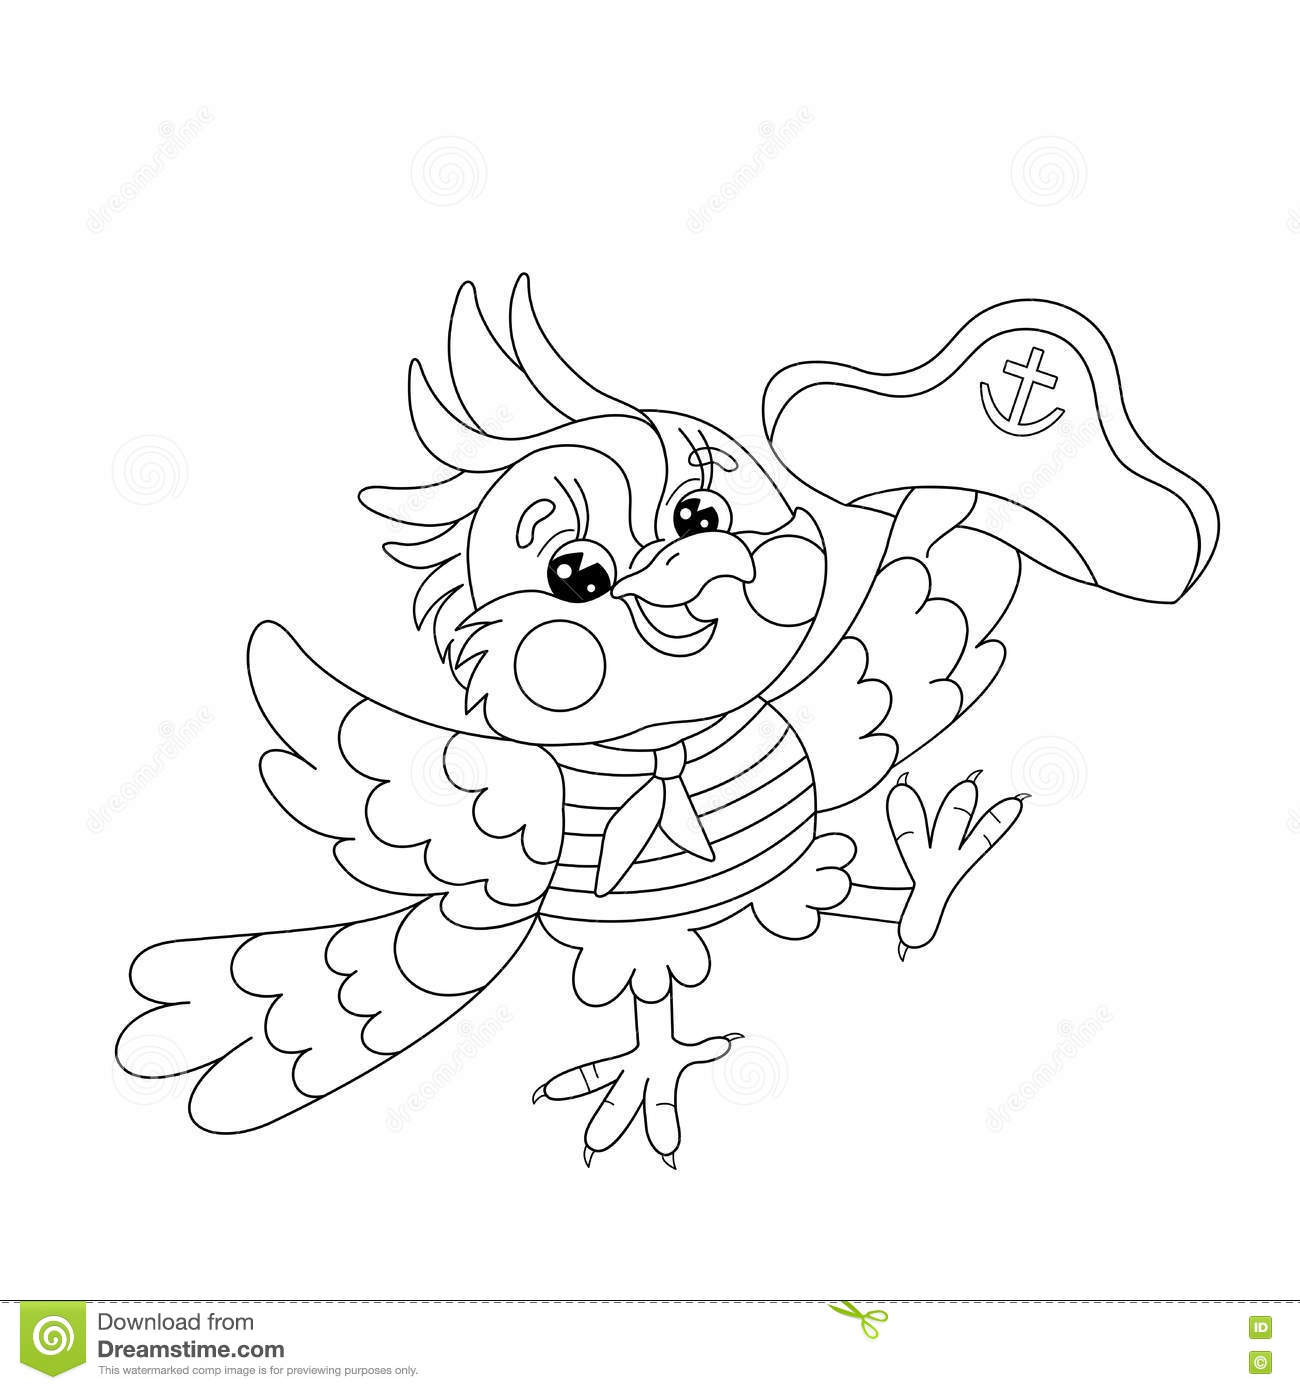 Coloring Page Outline Of Joyful Parrot Sailor Stock Vector